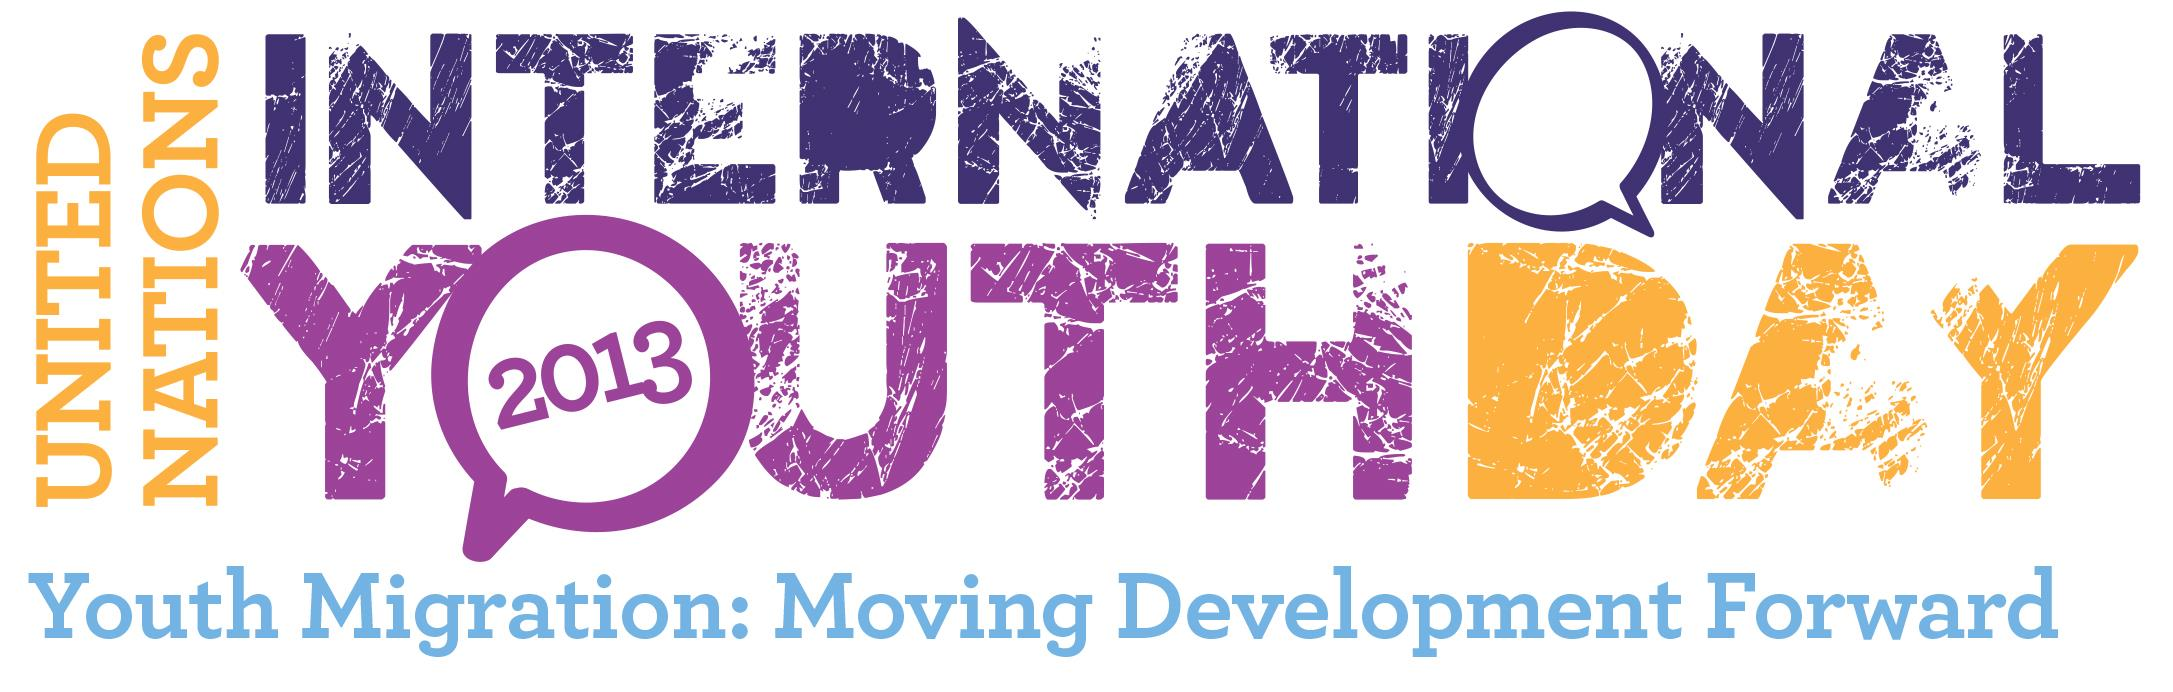 youth_day_banner_big